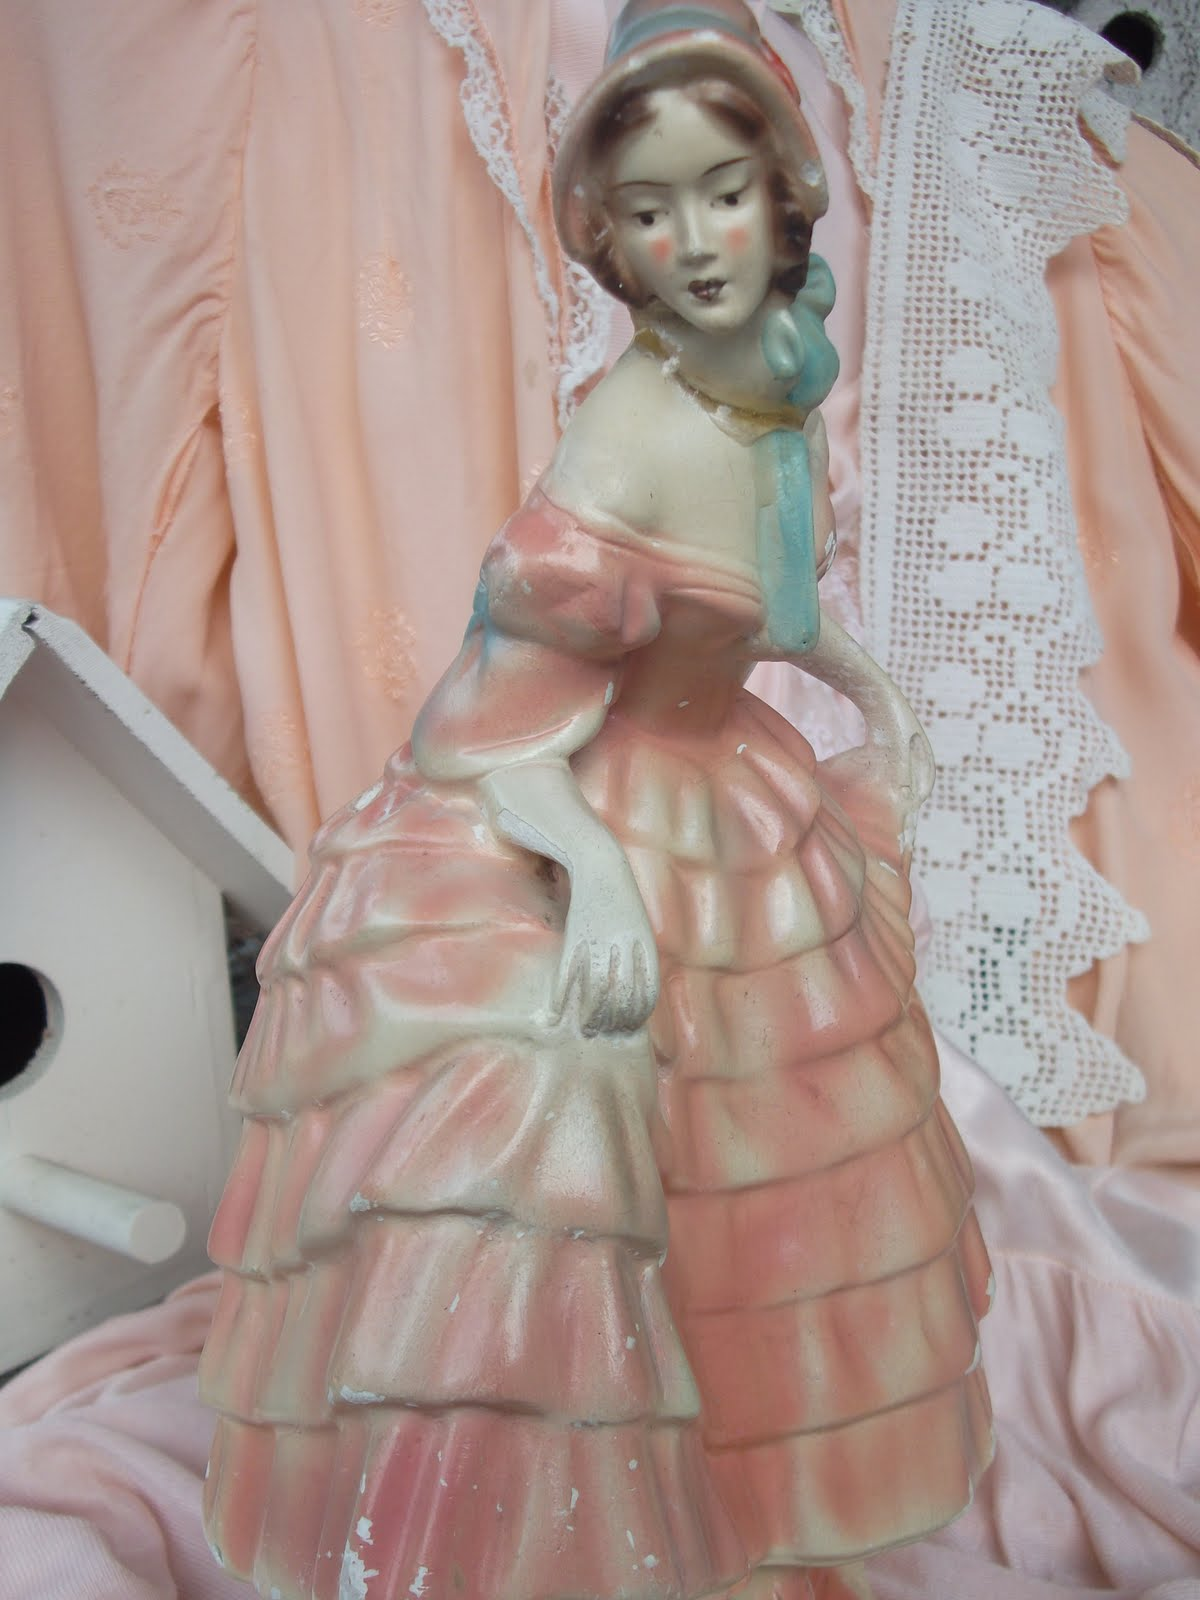 Wininger s floral french lick dear Abby!